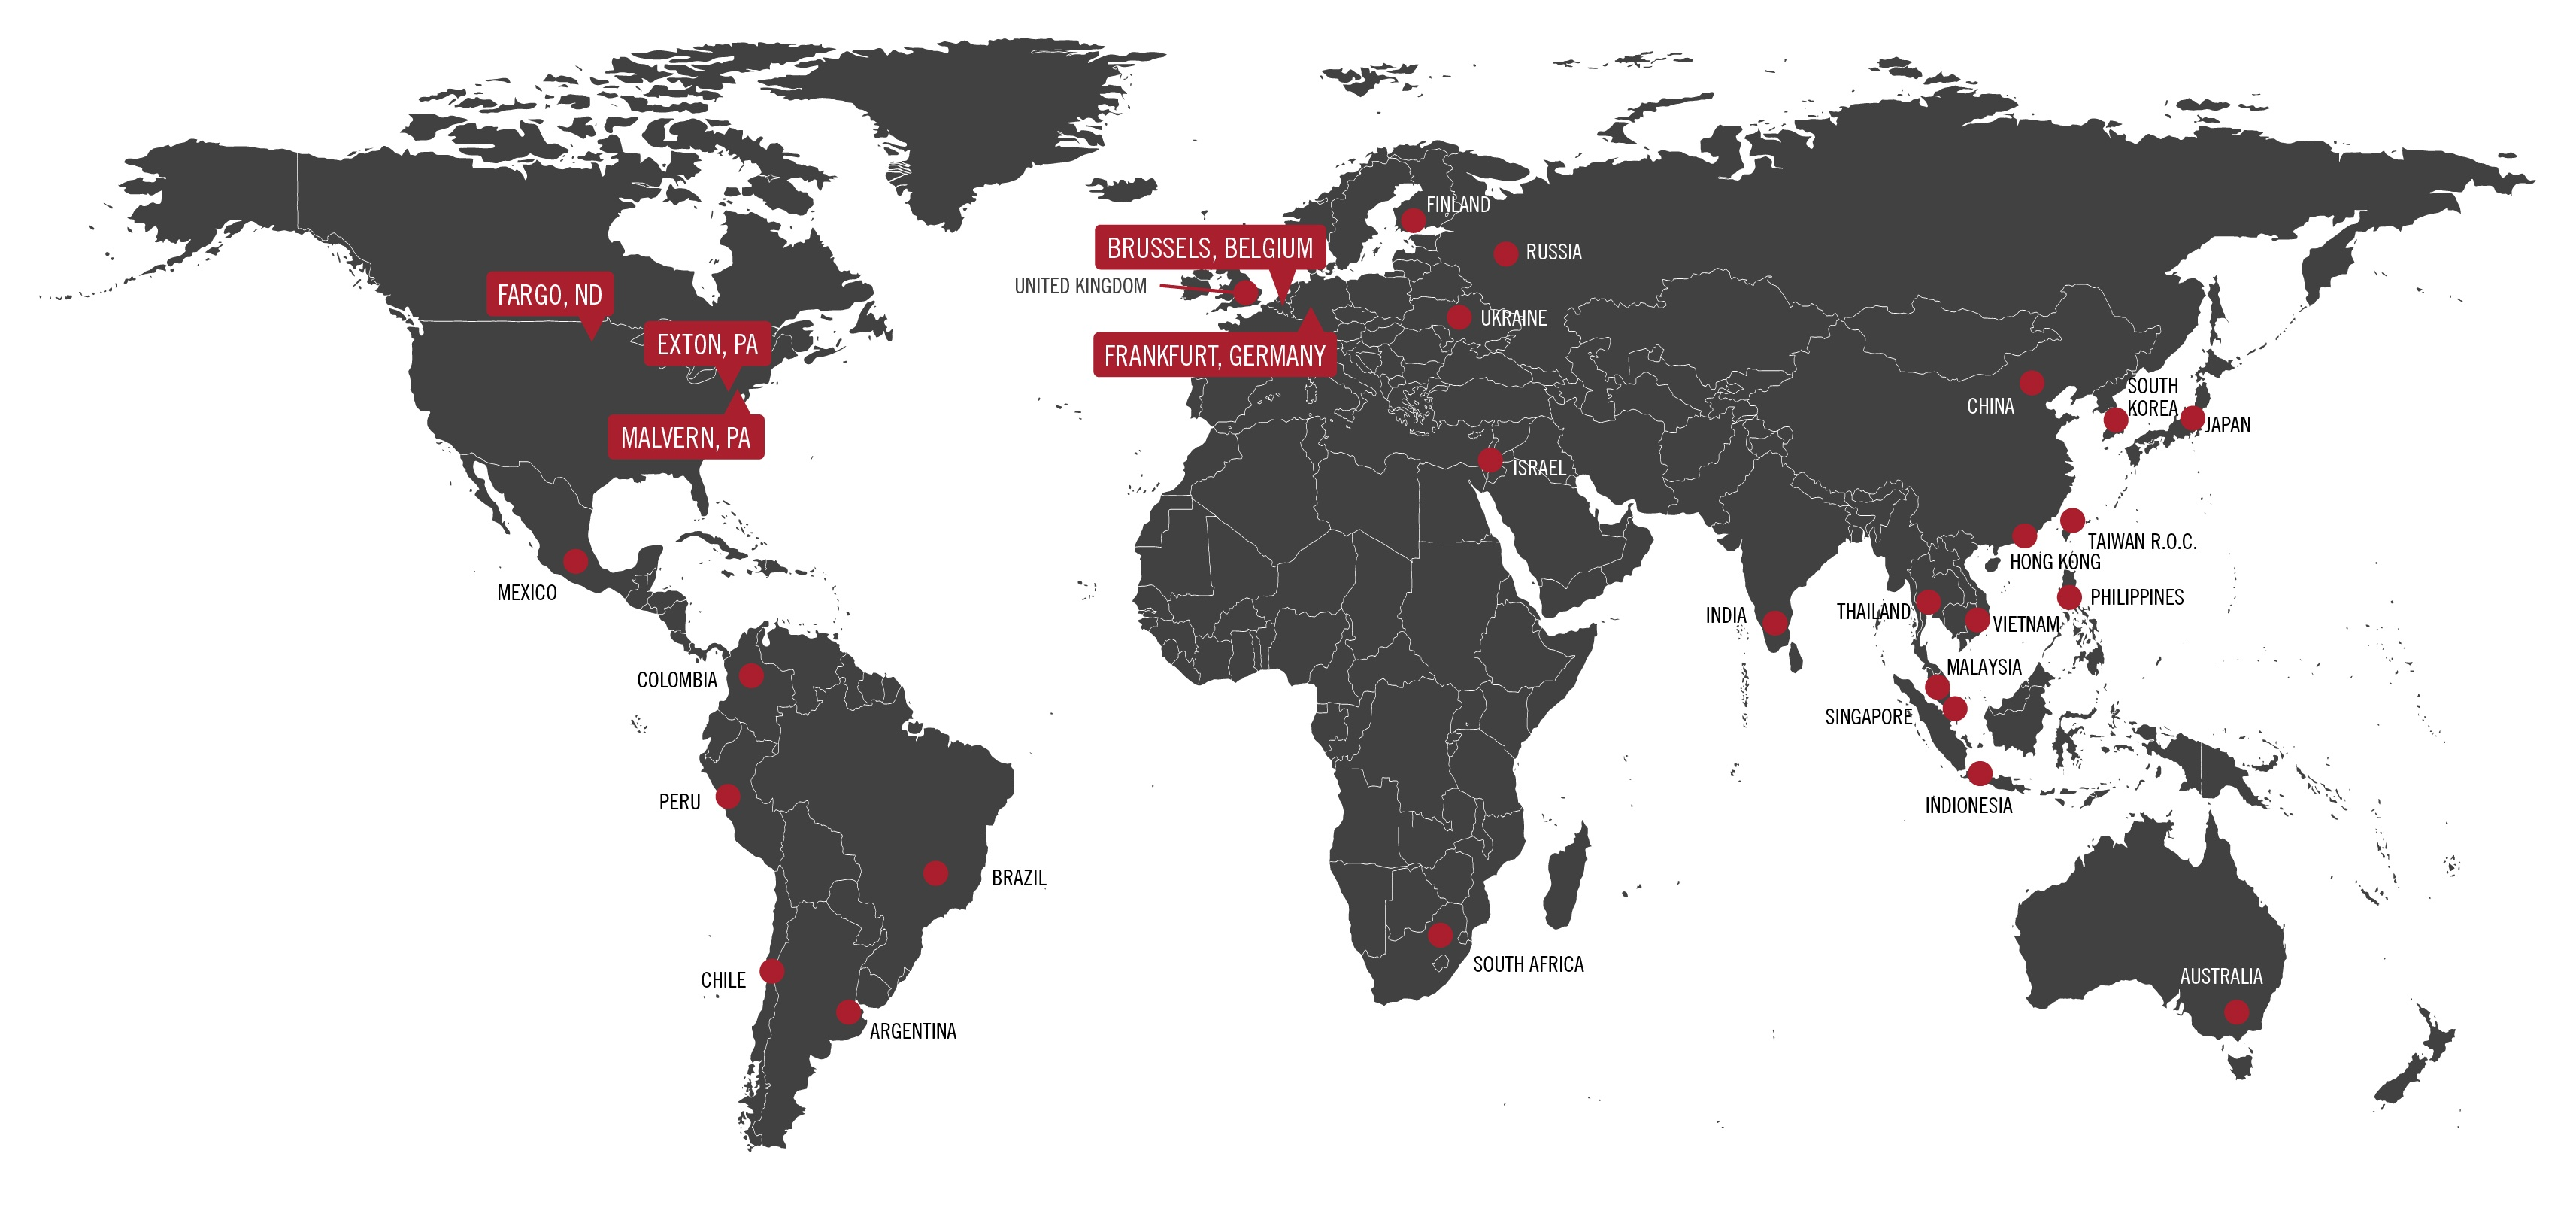 clinical trial global storage and distribution map of CSM's network and partner facilities